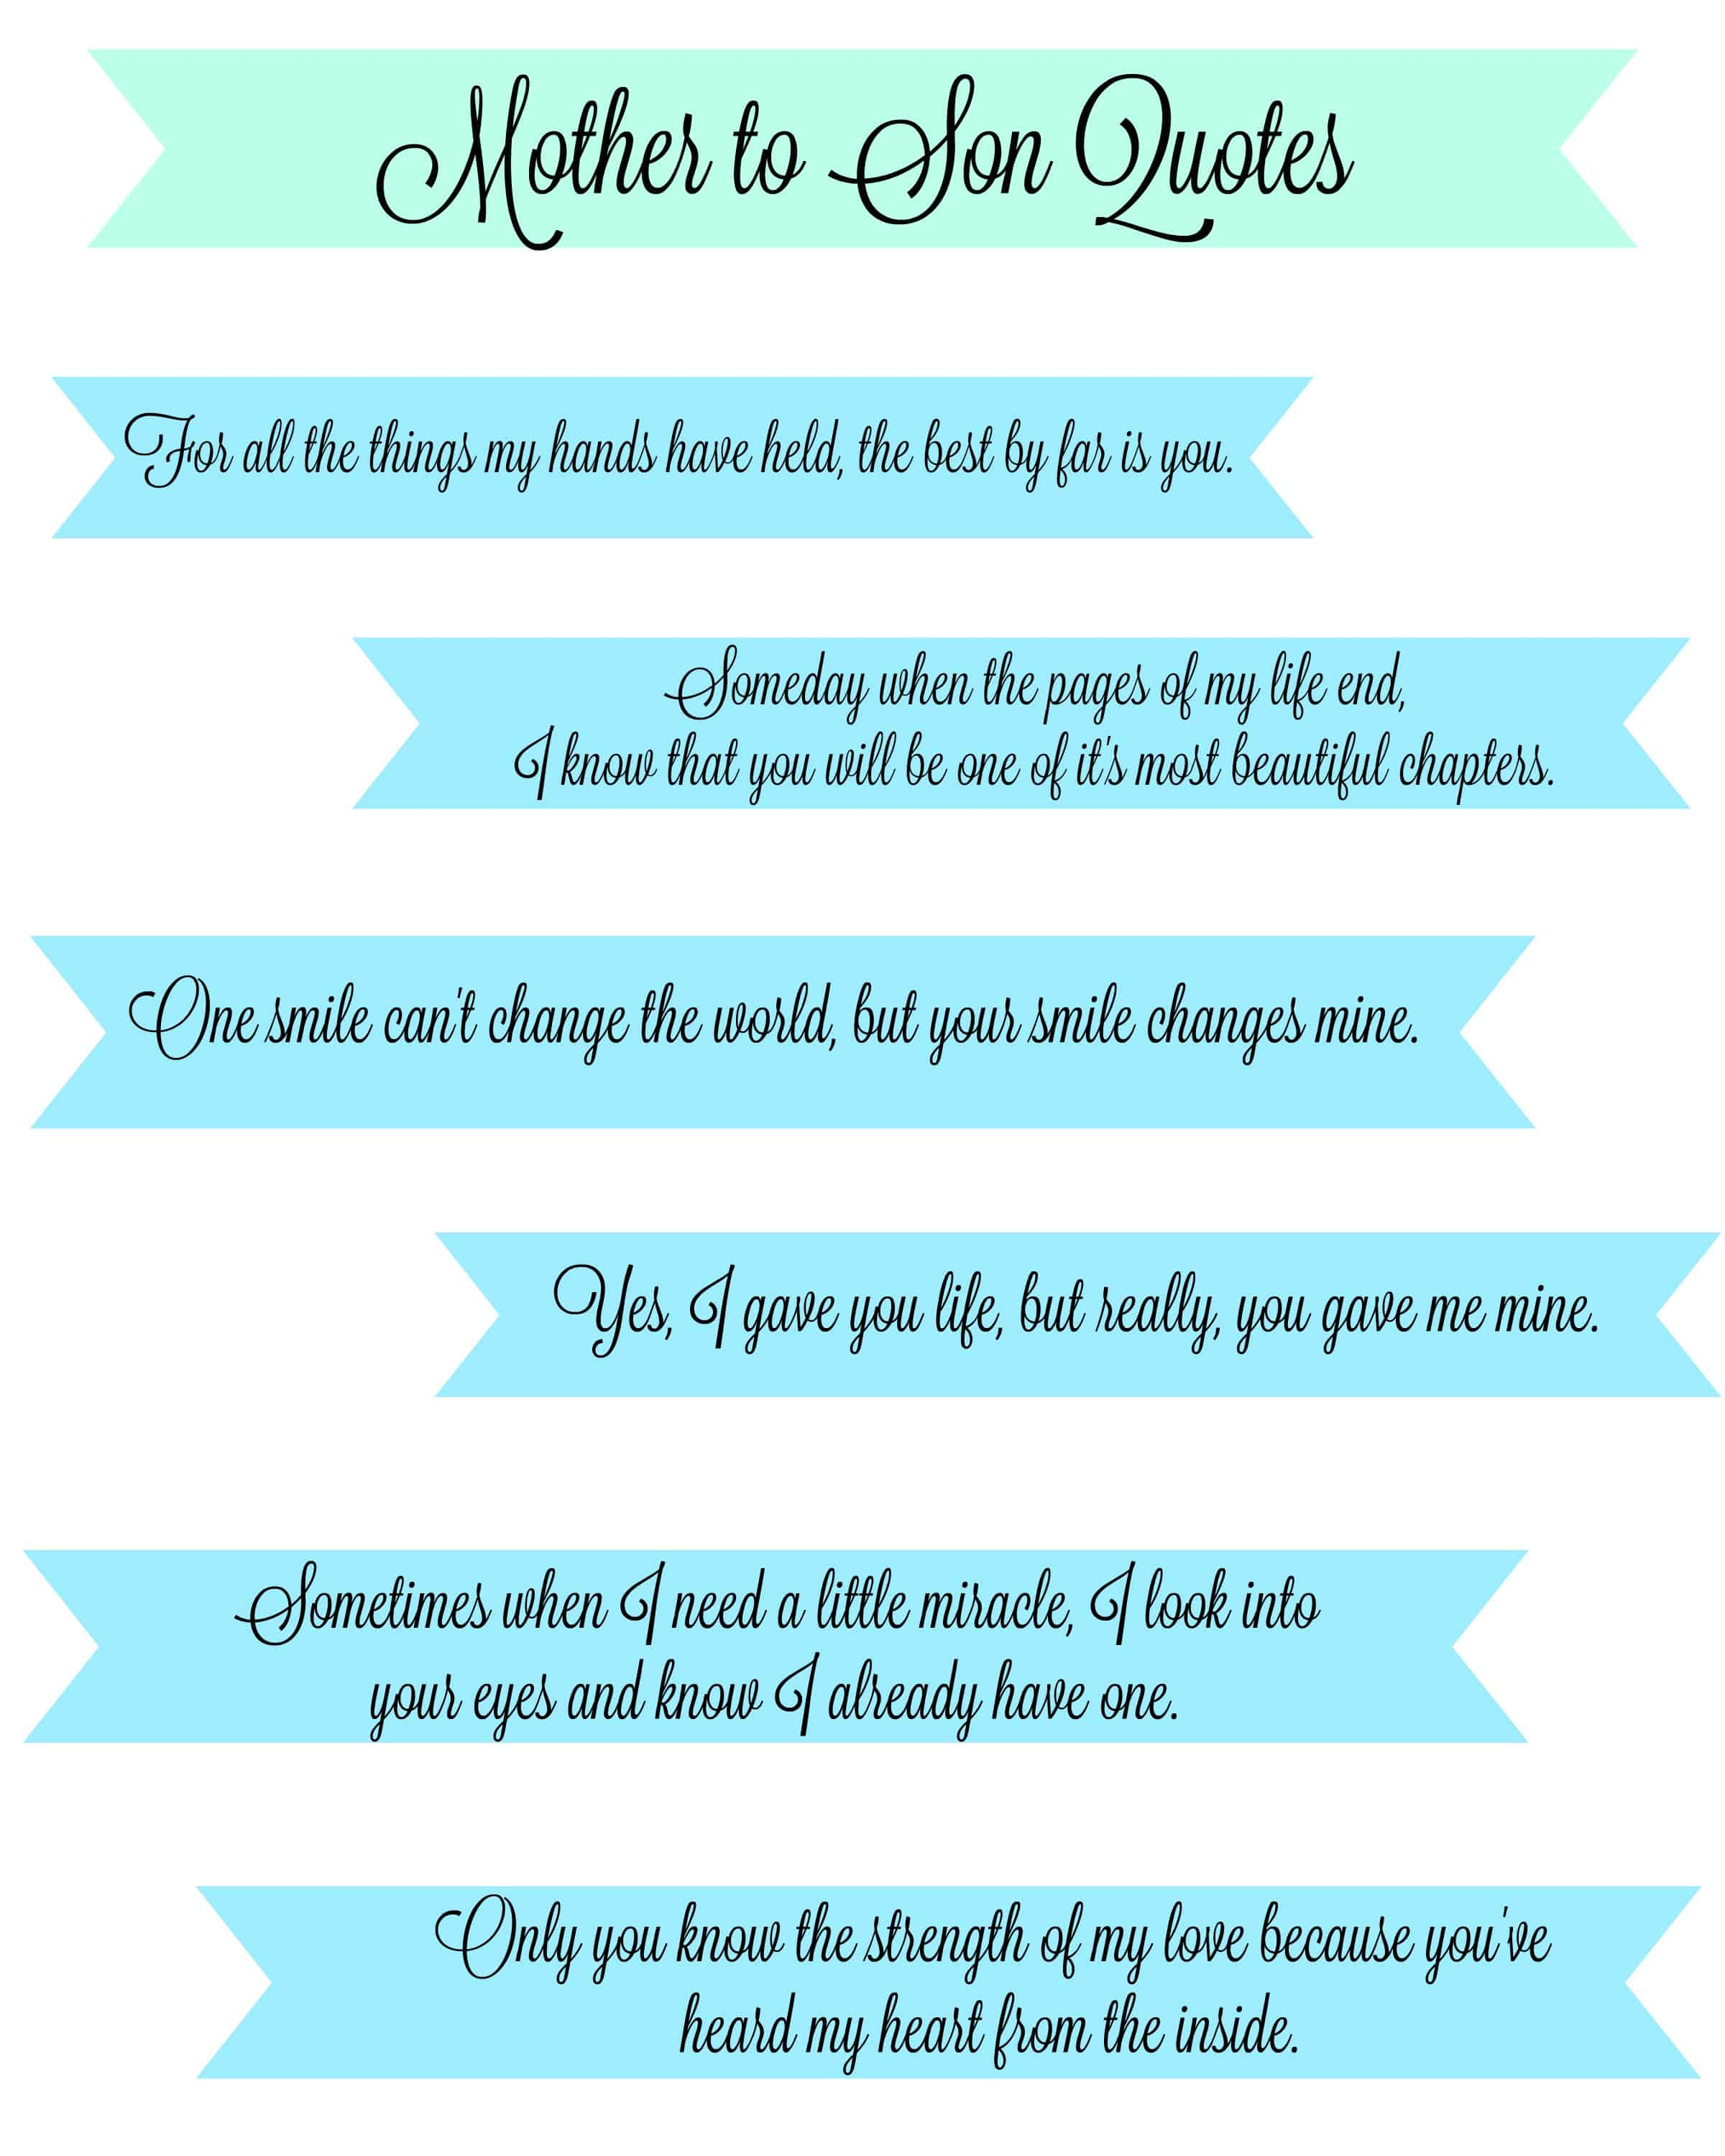 Mom And Son Quotes Pictures: Quality Time With Board Games & Mother And Son Quotes